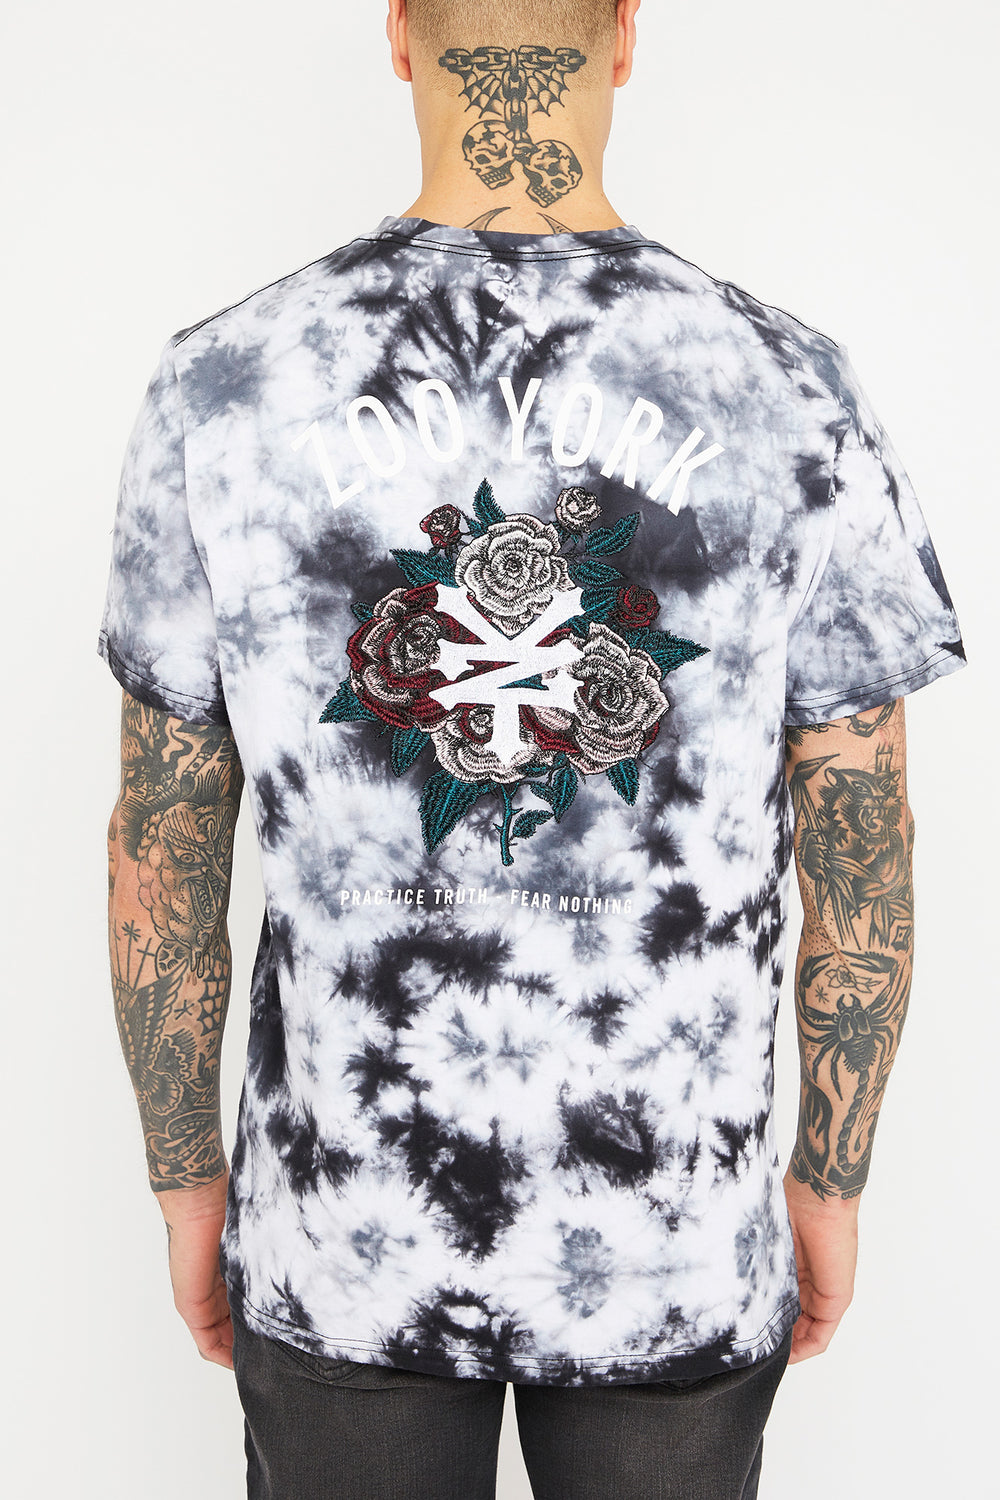 Zoo York Unisex Black & White Tie-Dye T-Shirt Black